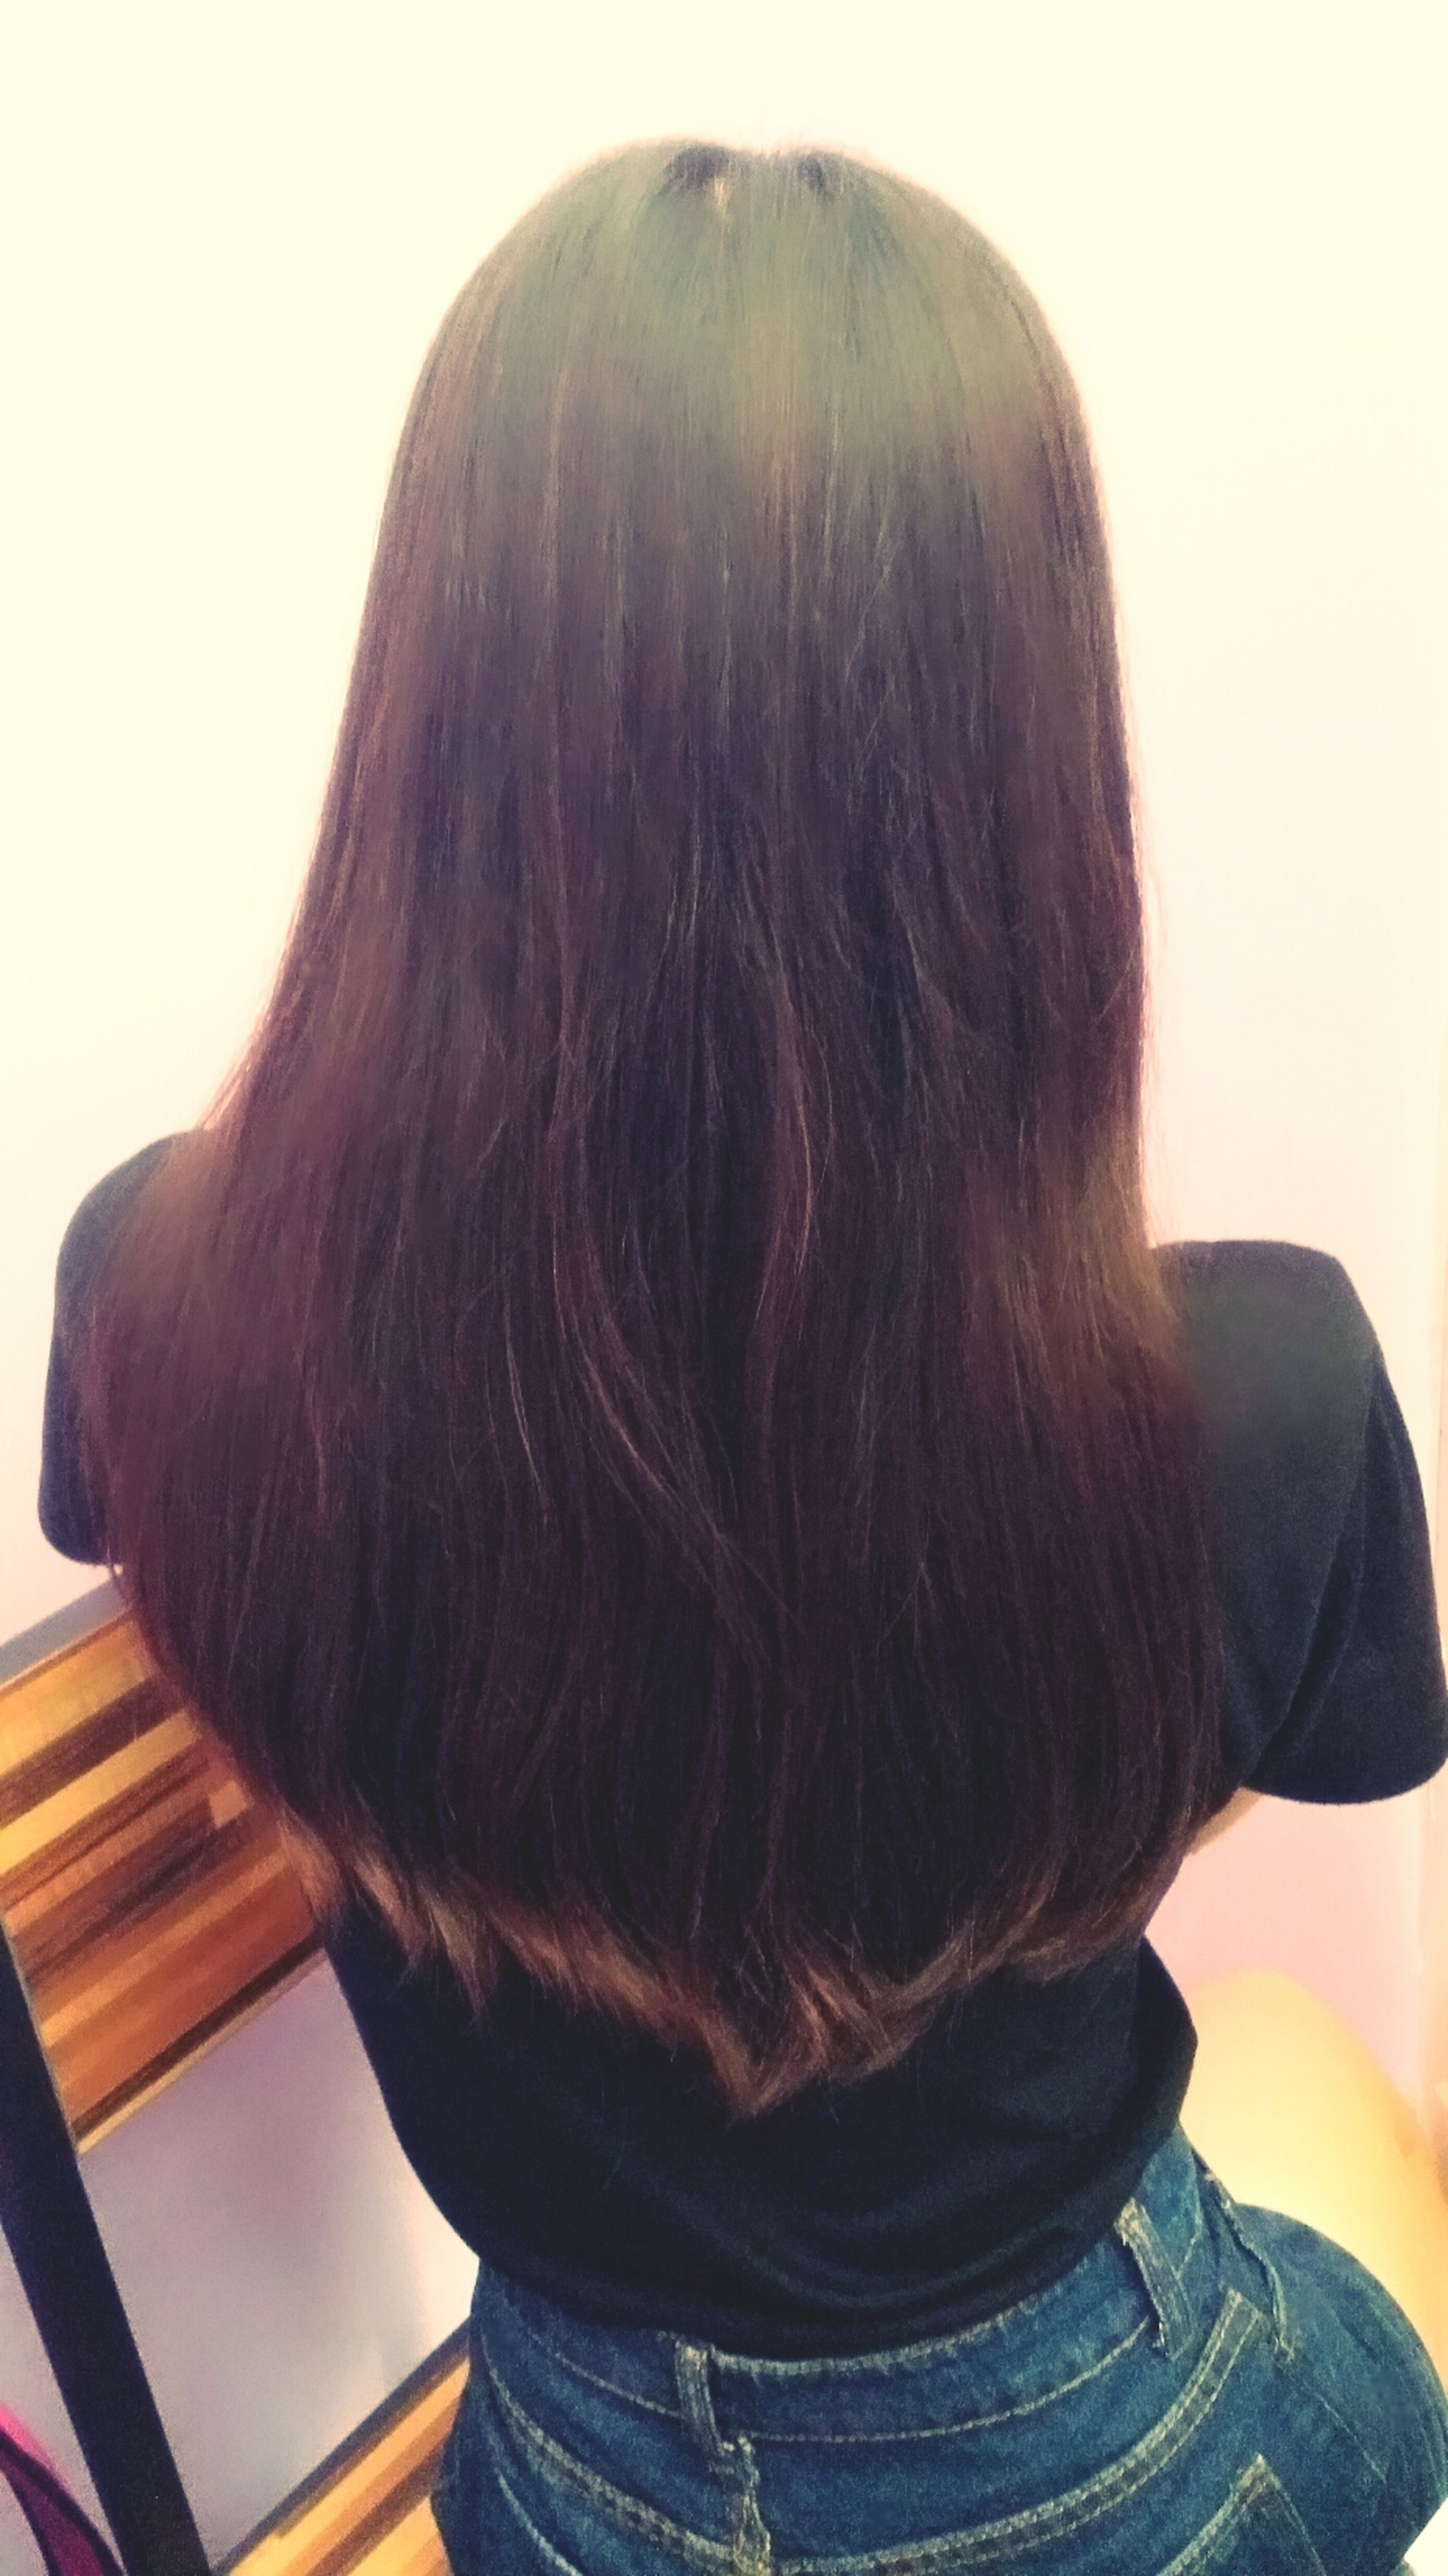 lifestyles, long hair, rear view, headshot, waist up, leisure activity, casual clothing, young adult, standing, person, young women, three quarter length, obscured face, brown hair, black hair, clear sky, head and shoulders